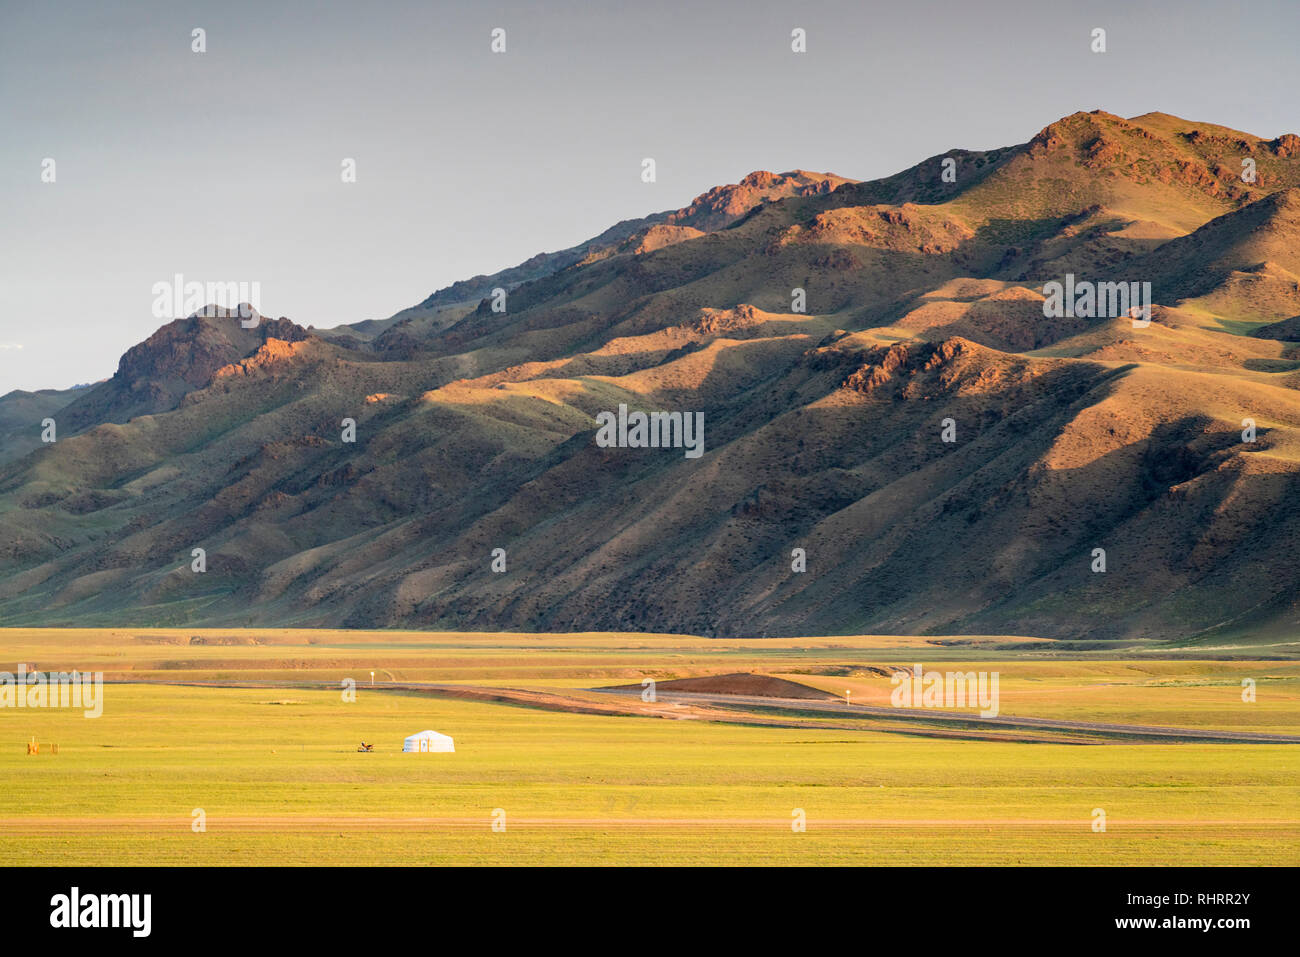 Nomadic ger and mountains in the background. Bayandalai district, South Gobi province, Mongolia. - Stock Image